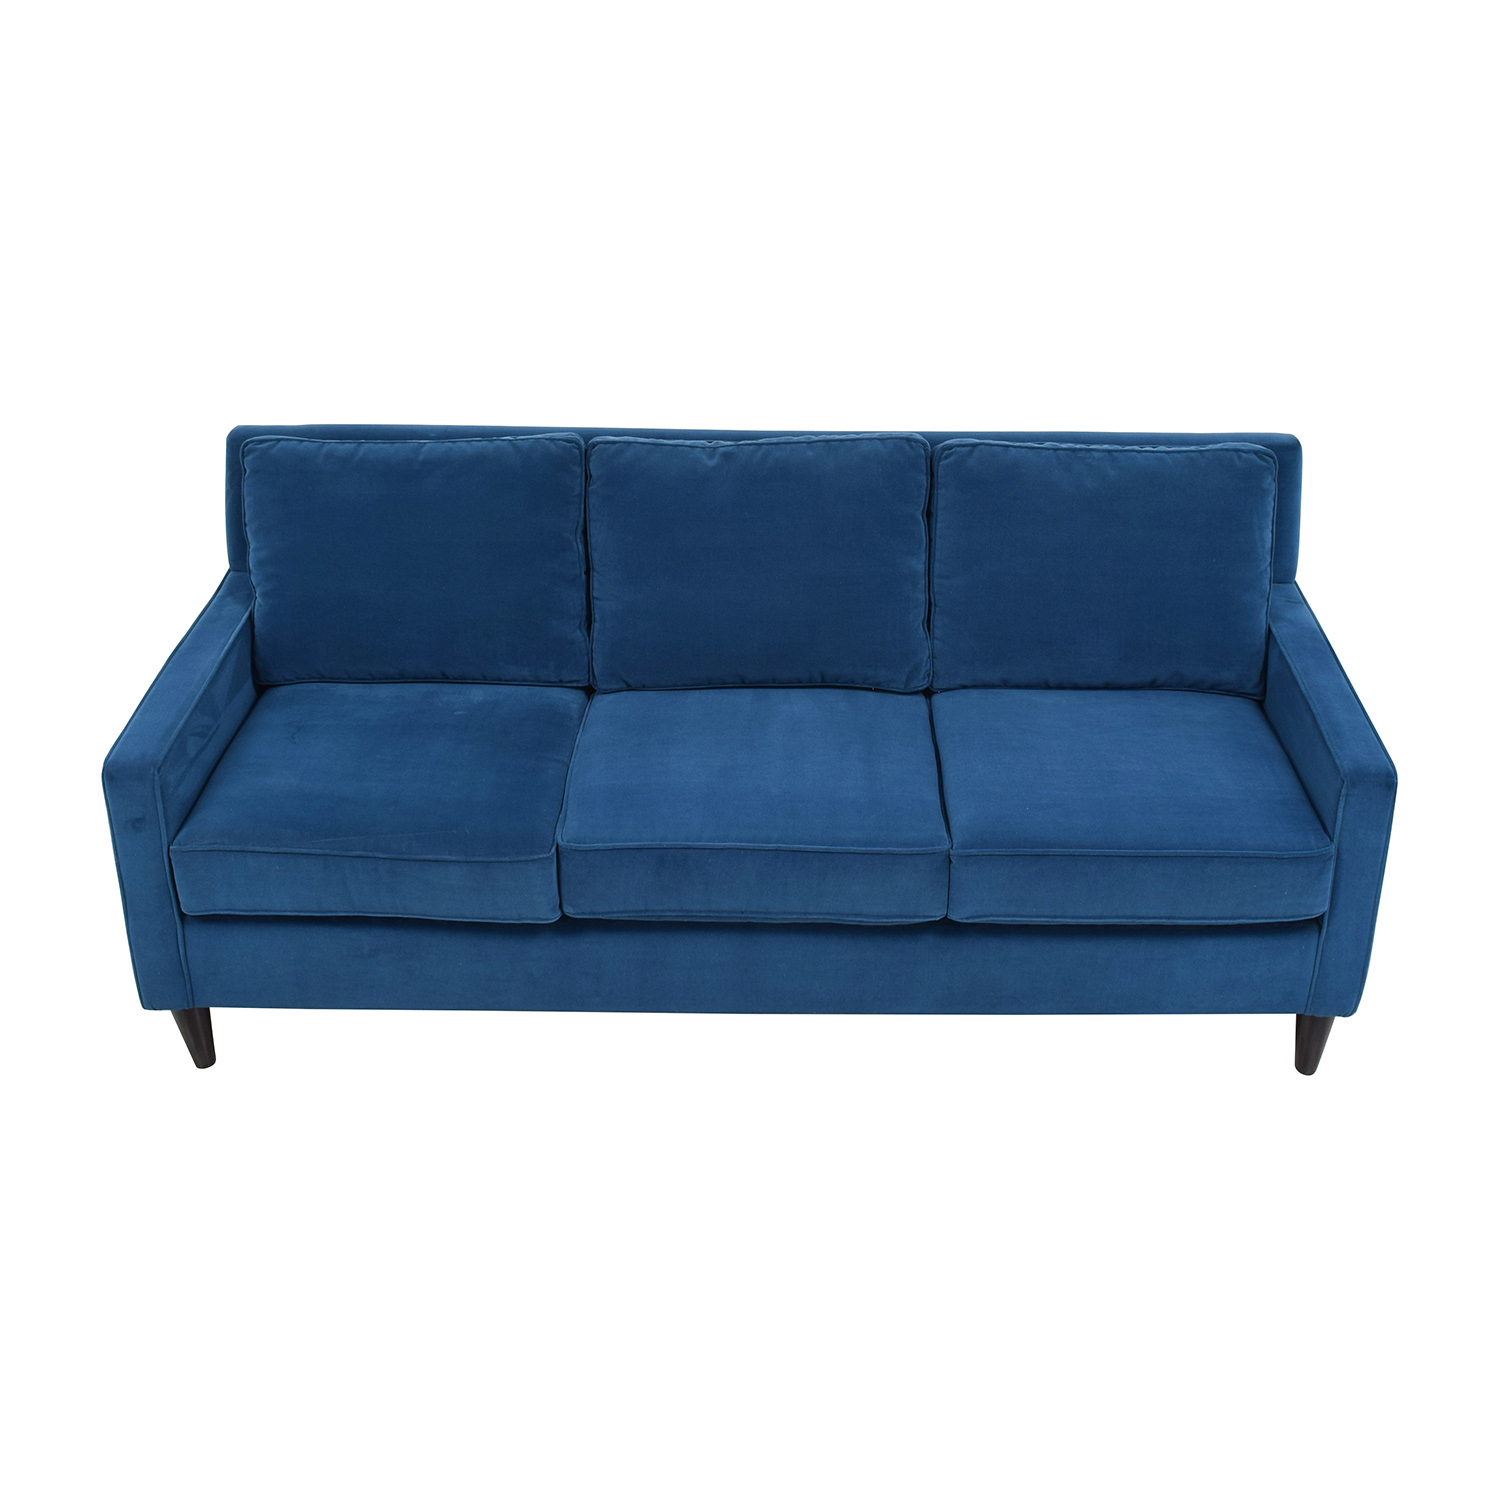 Brentwood Classics Brentwood Classics Jimmy Sofa in Admiral discount